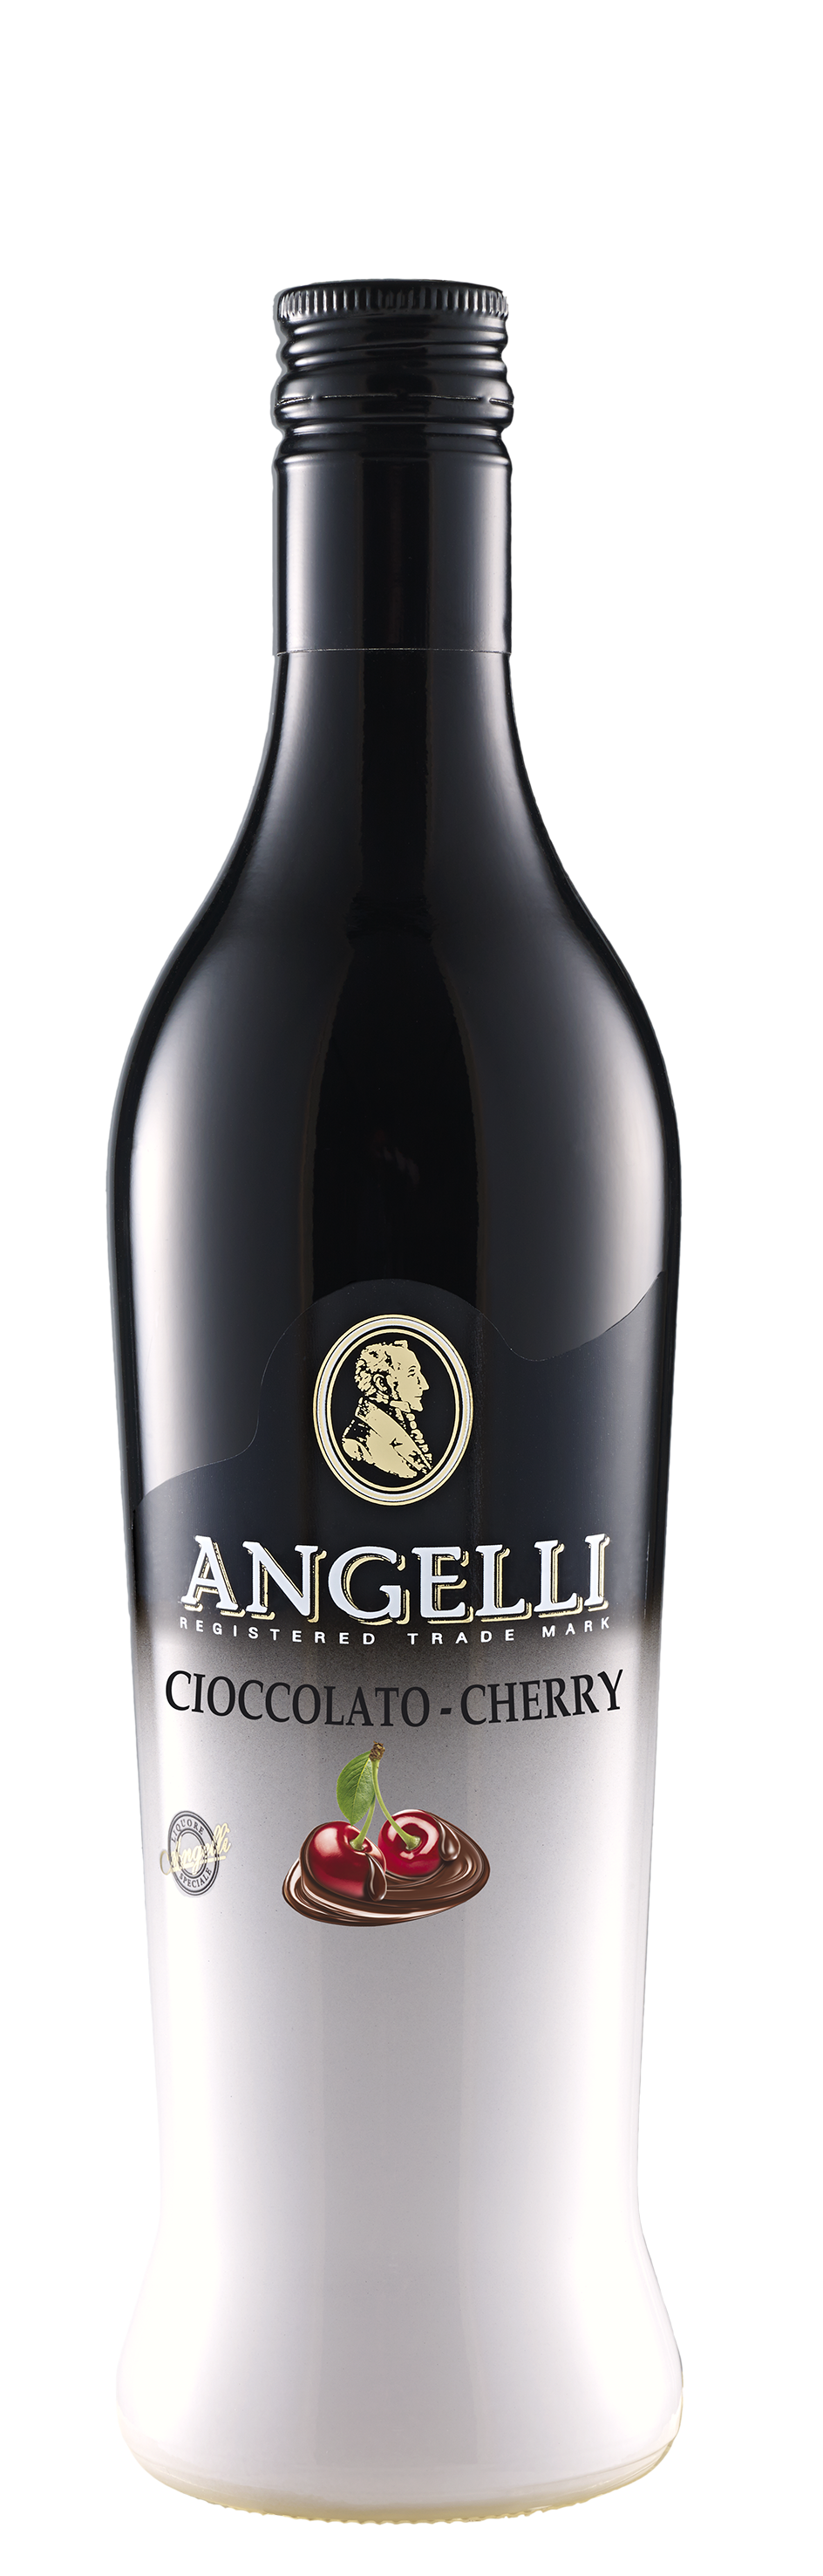 Angelli Cioccolato-Cherry